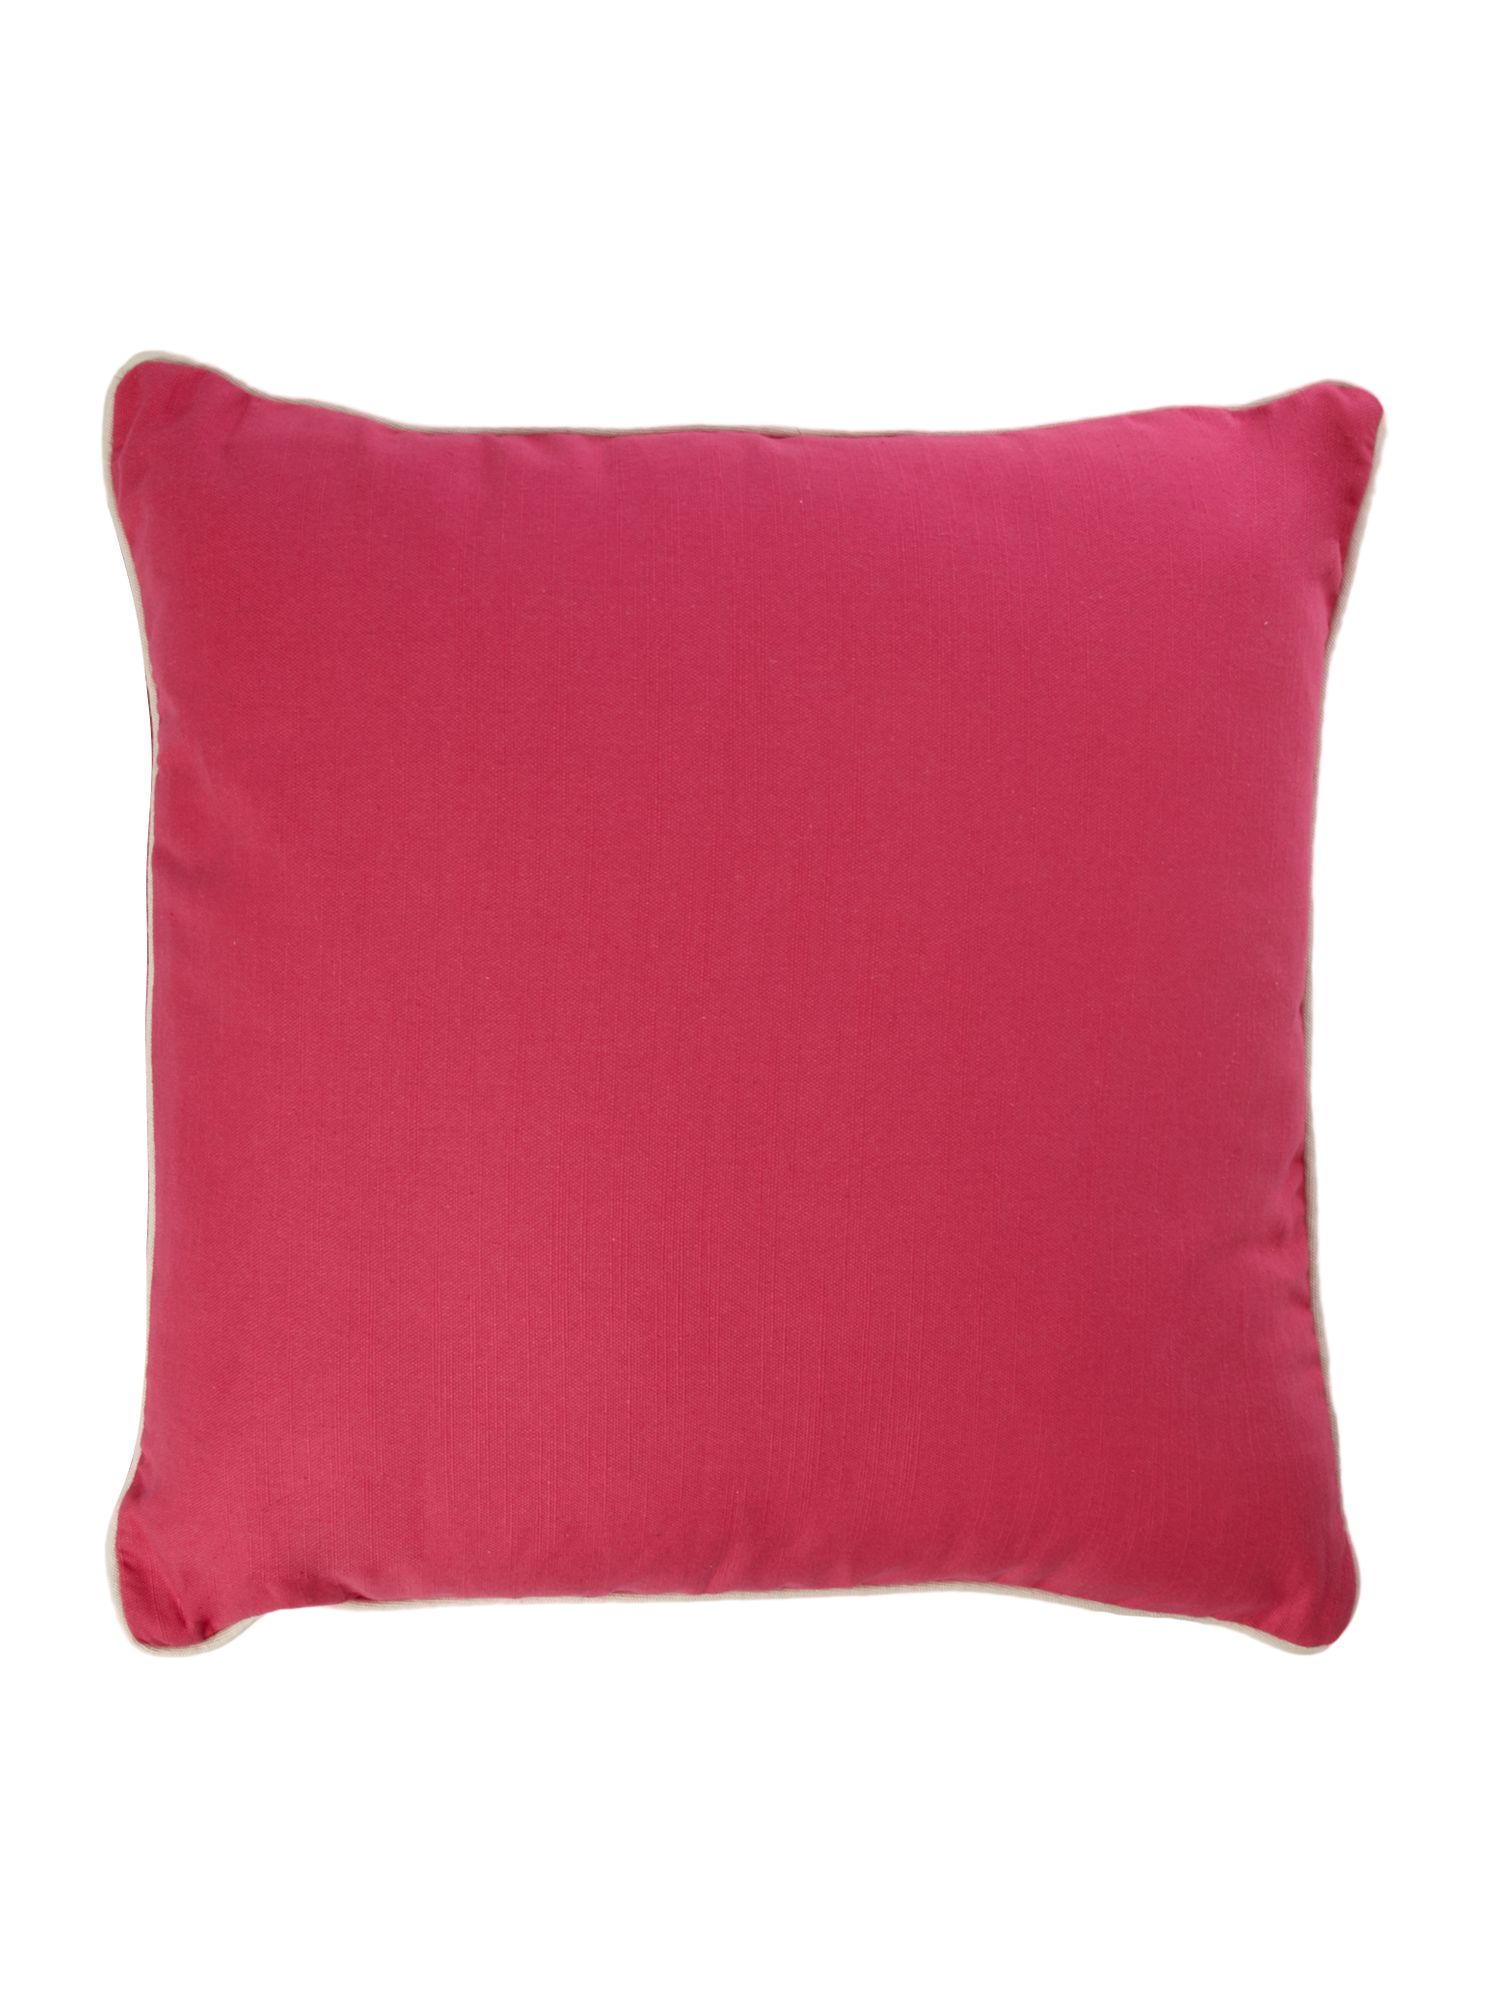 Pink cotton cushion with contrast piping